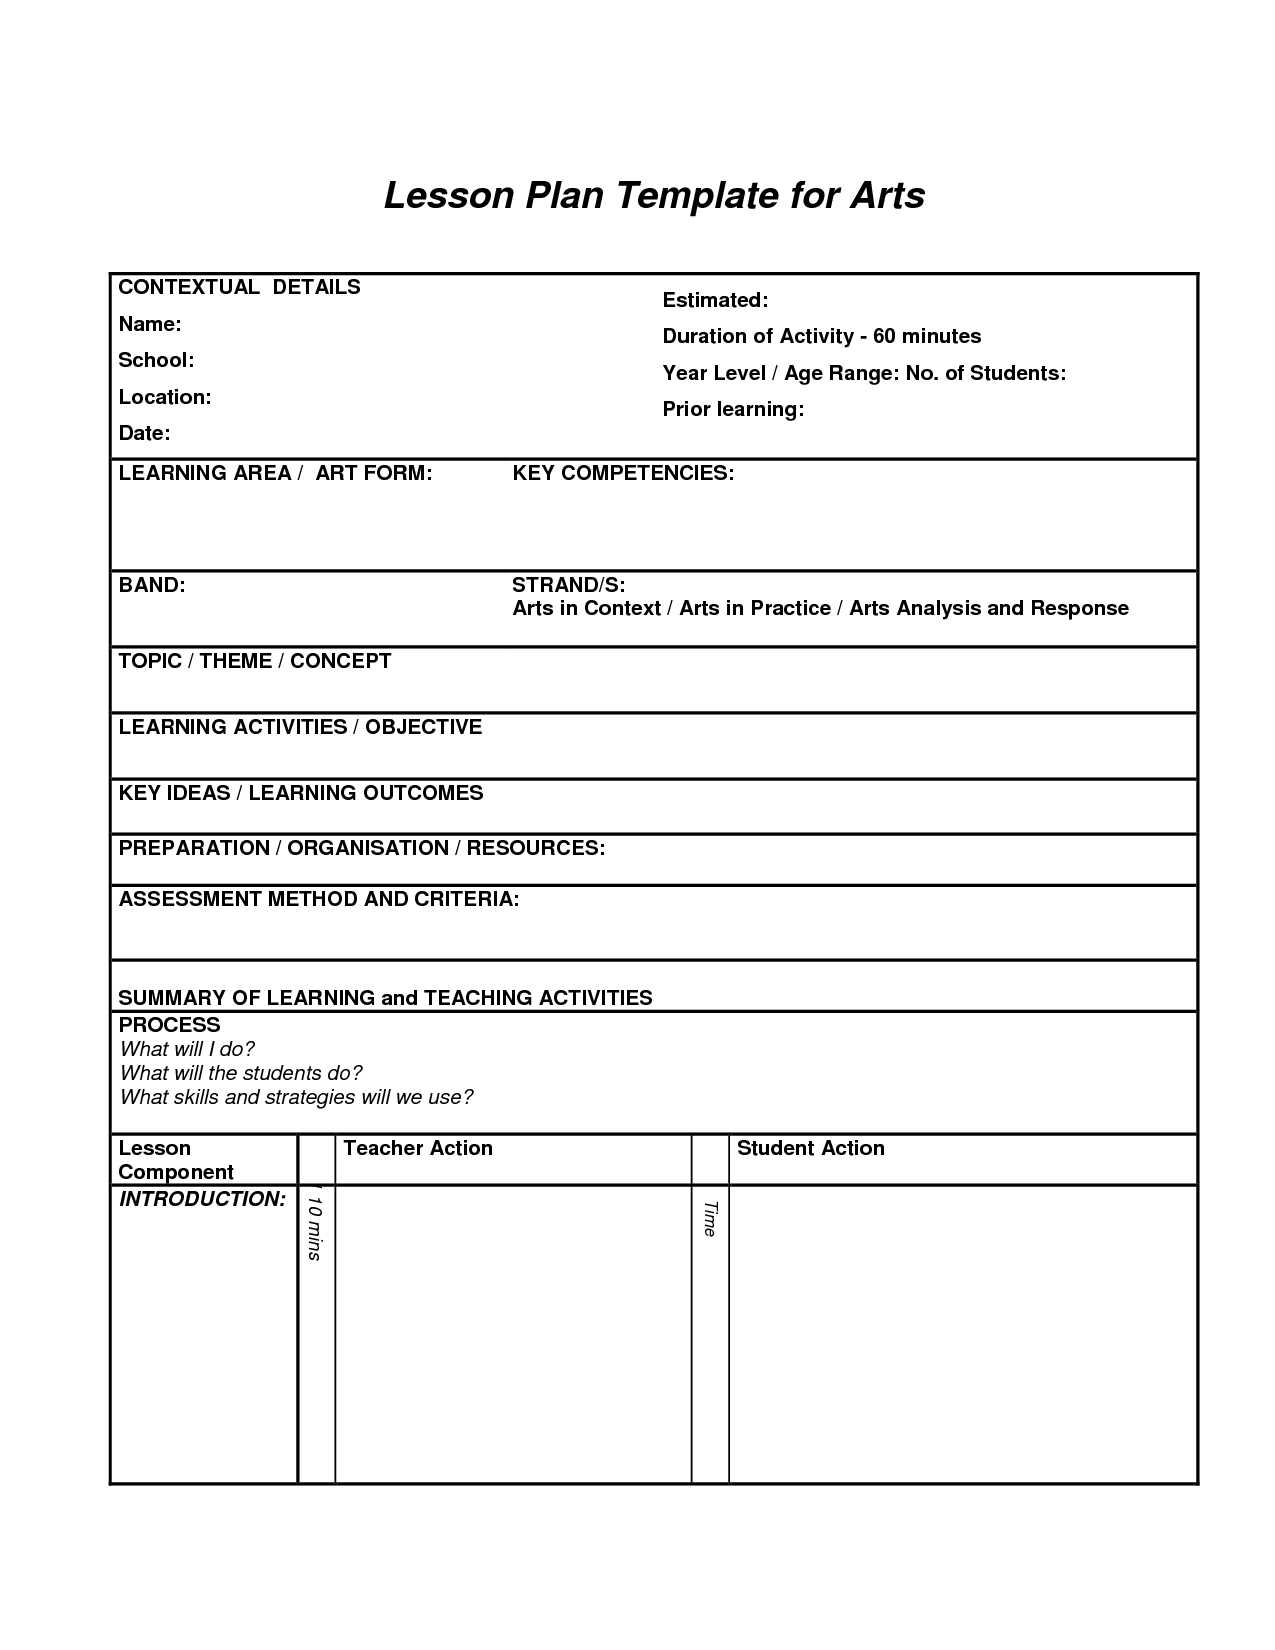 Lesson plan template for arts art education essentials for Teachers college lesson plan template